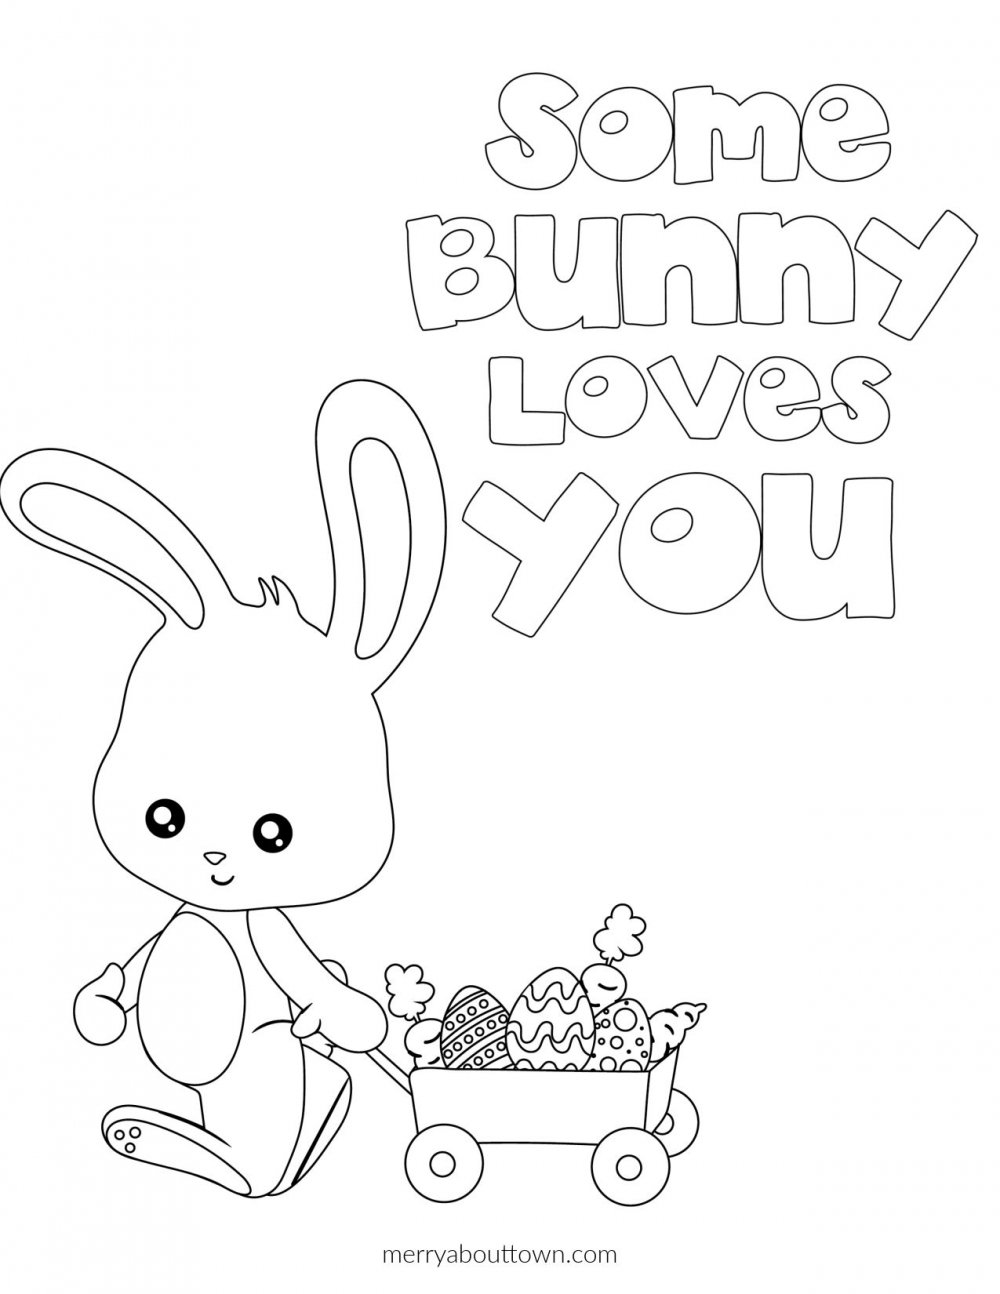 Free Easter Printable Coloring Pages - Merry About Town